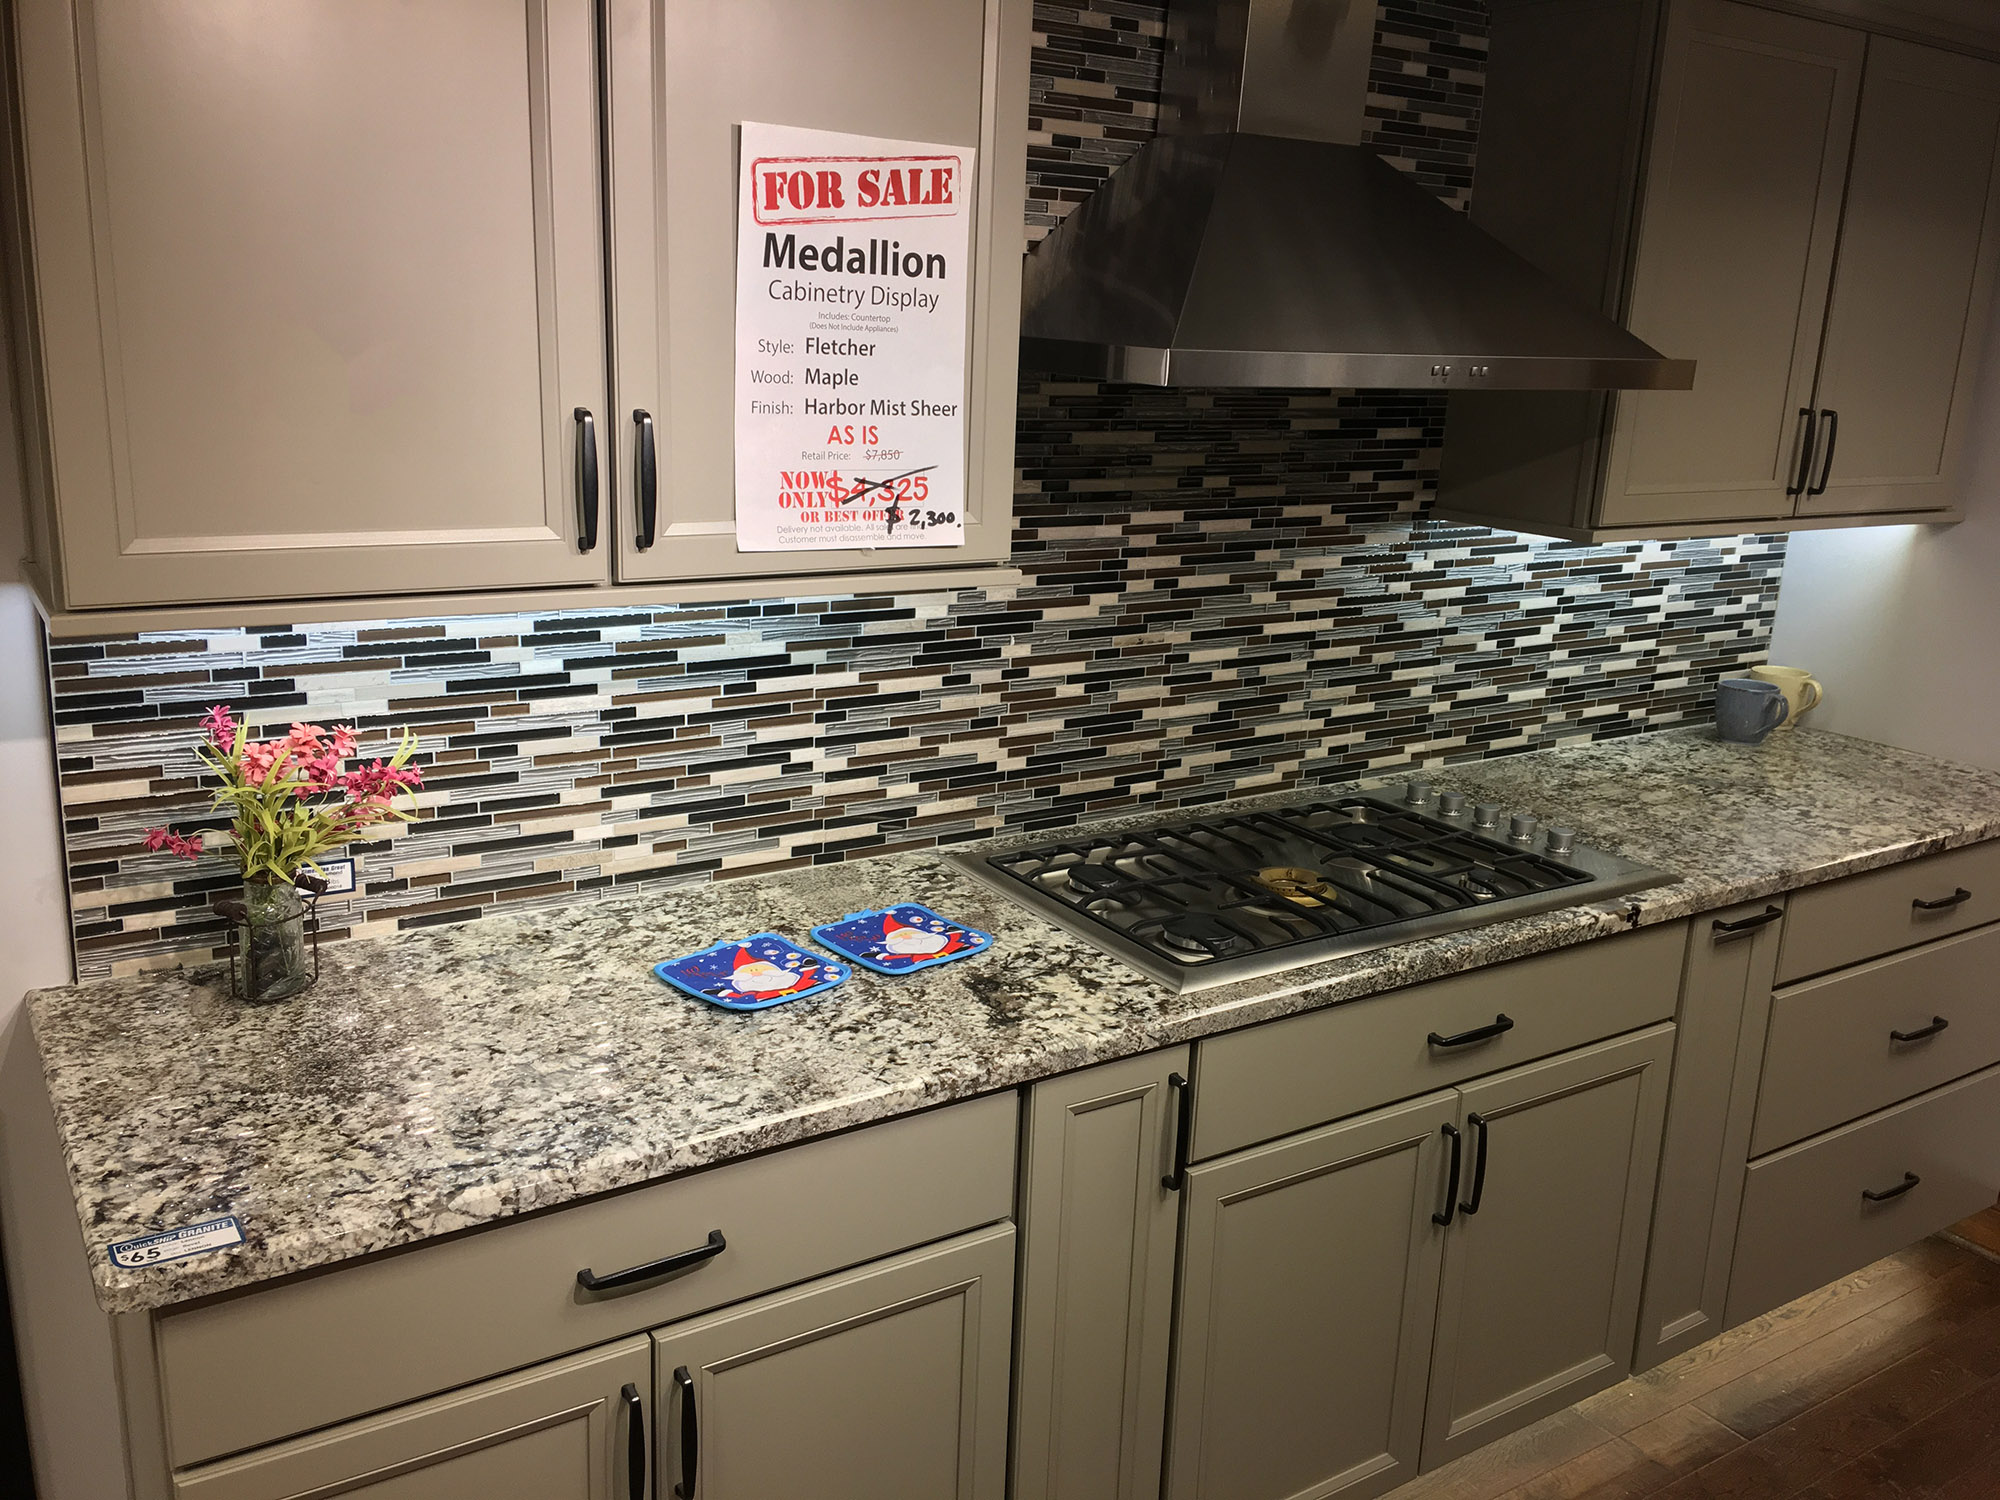 Floors And Kitchens St John Cabinetry Display Blowout Sale Schillings